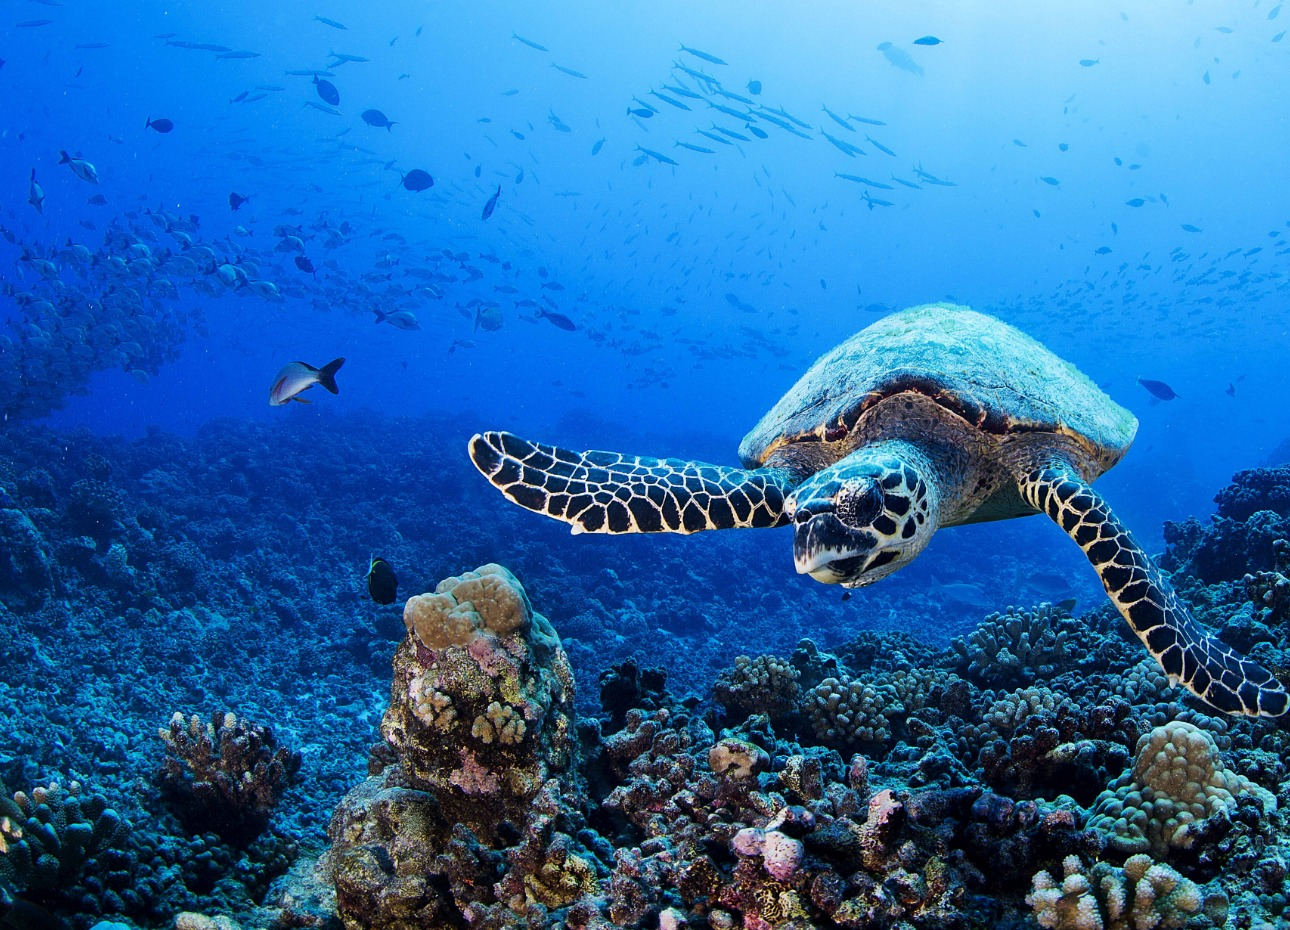 French Polynesia underwater reef image